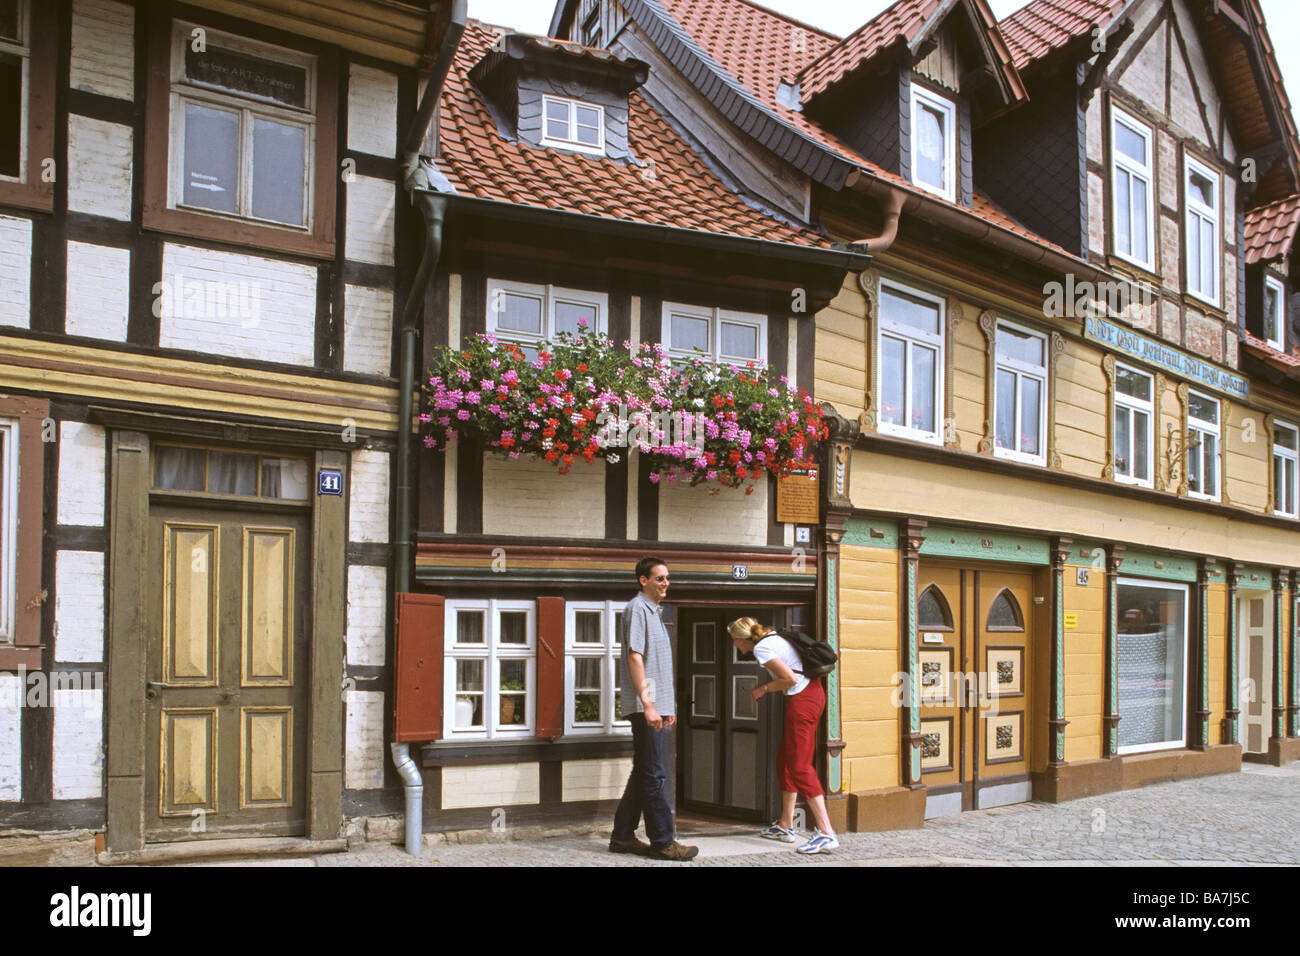 Wernigerode, old town, smallest house, Harz mountains, Saxony Anhalt, Germany - Stock Image